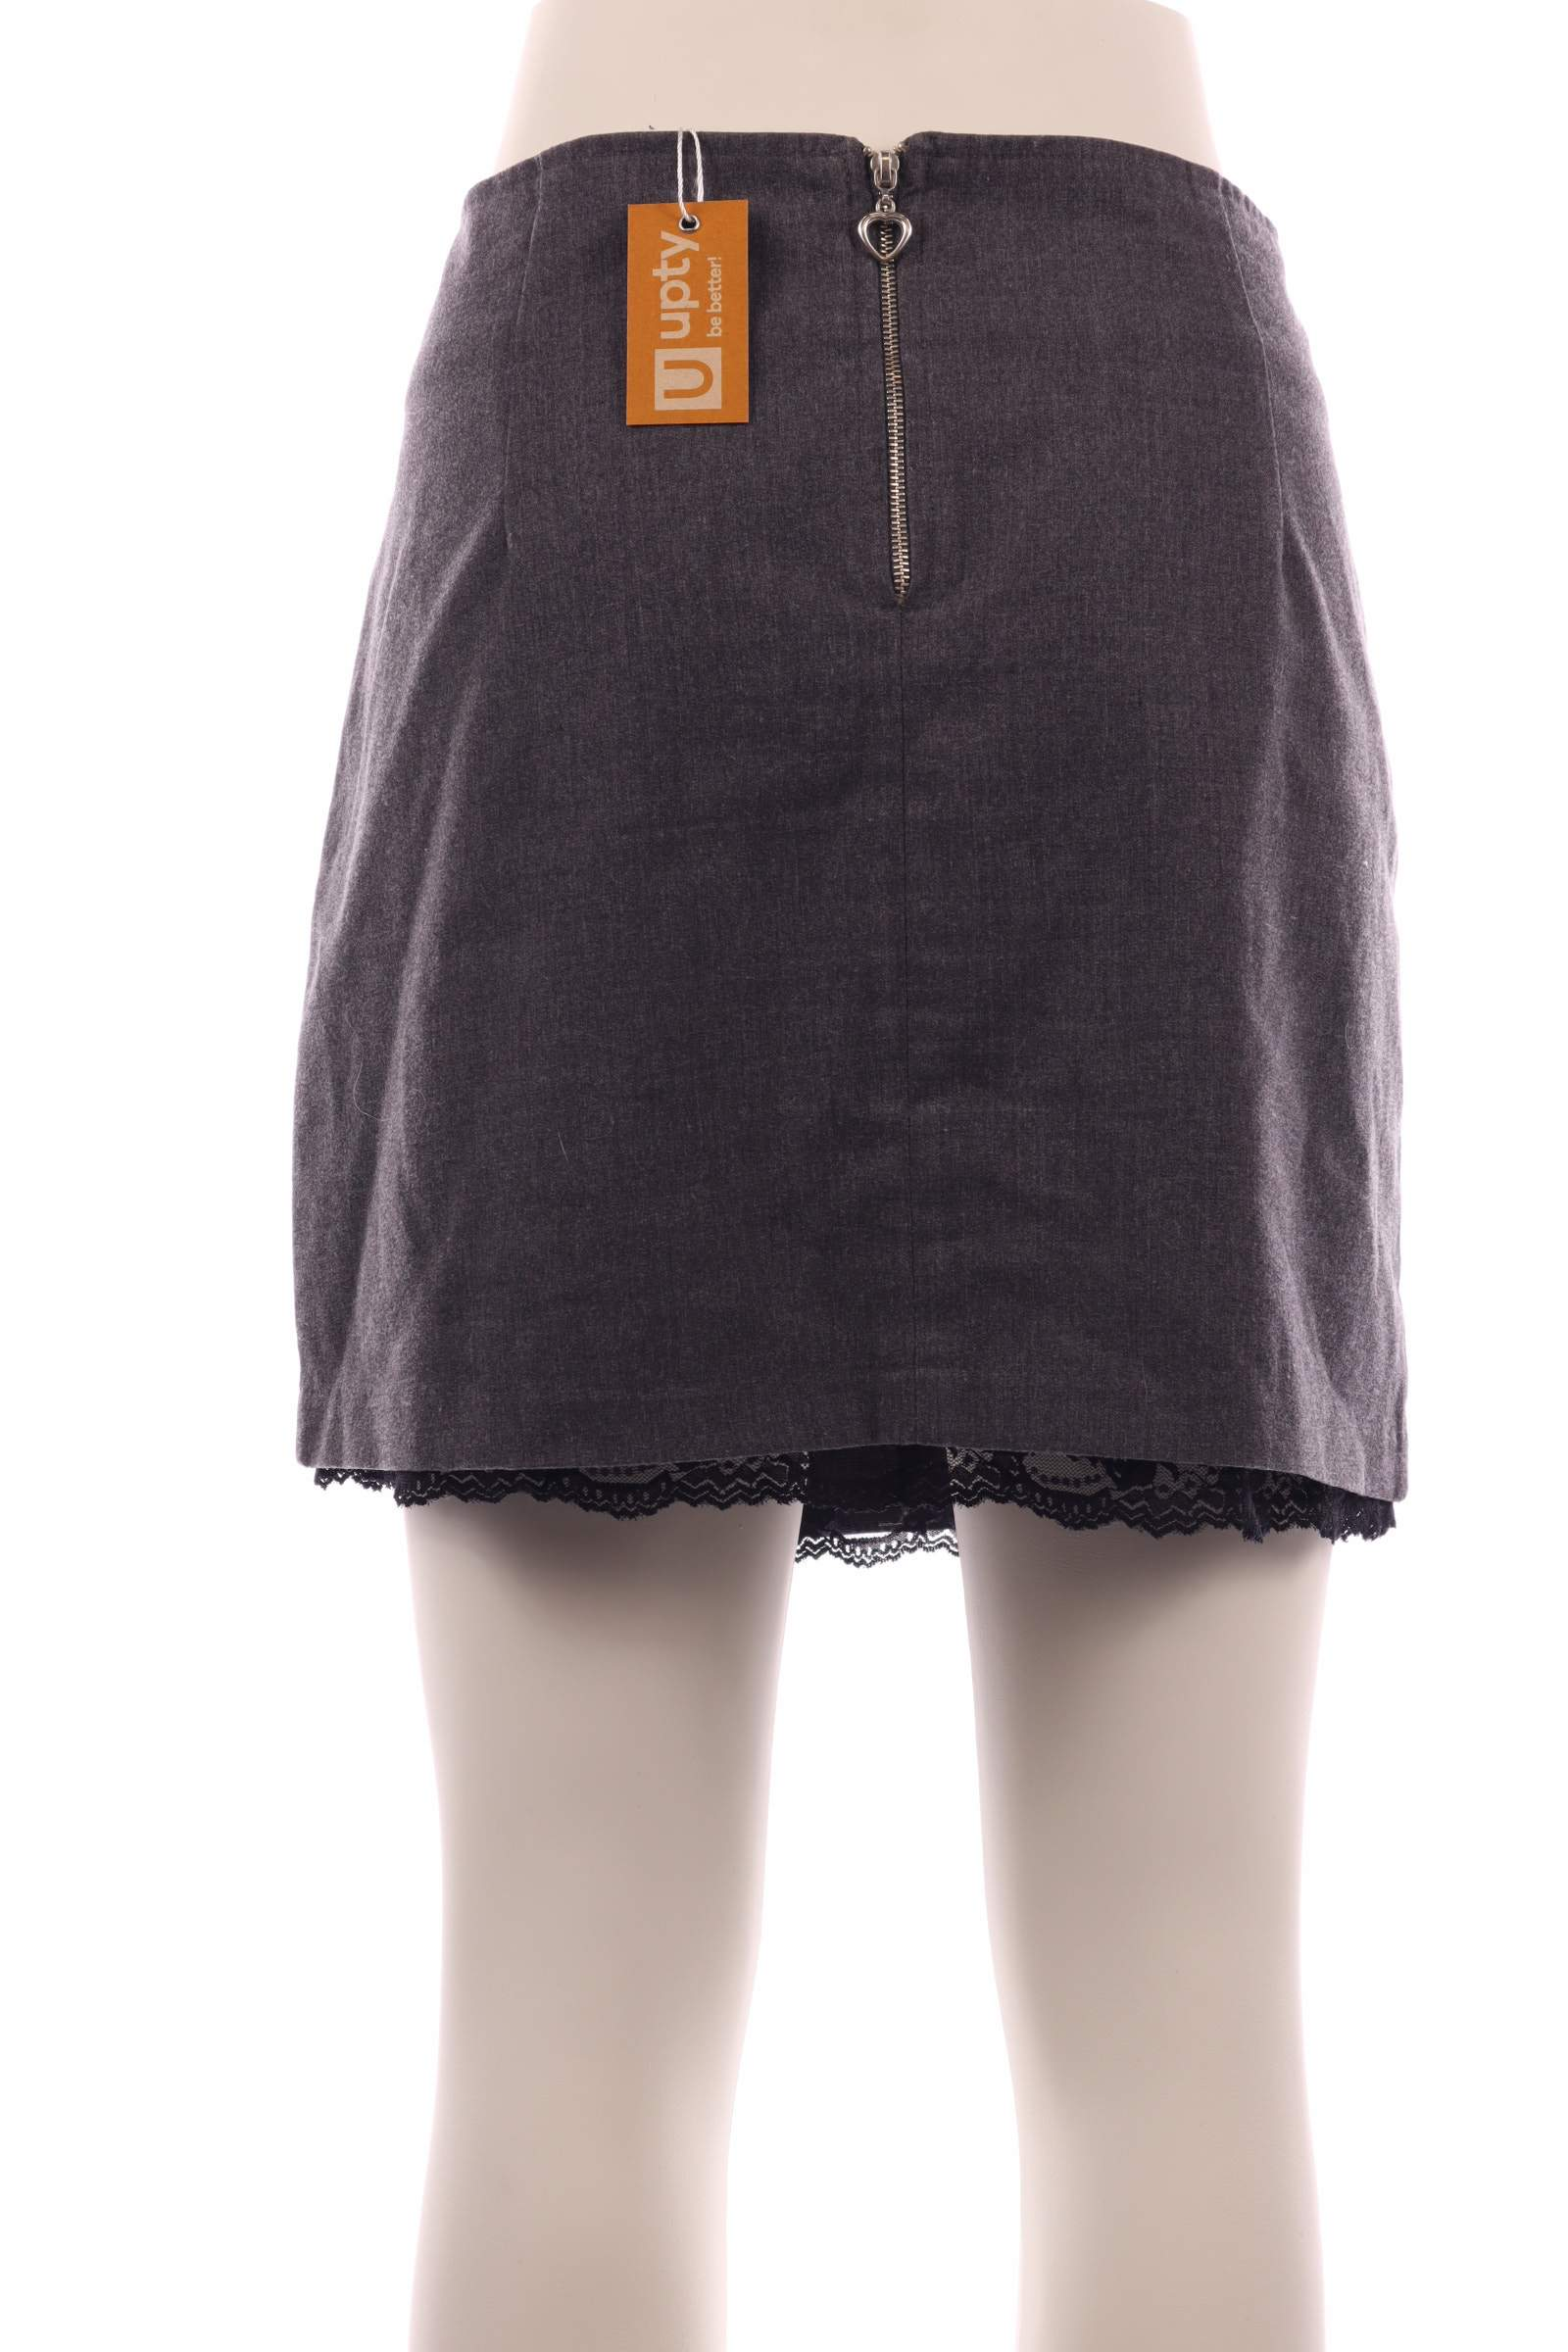 FB Sisters Gray Skirt - upty.store